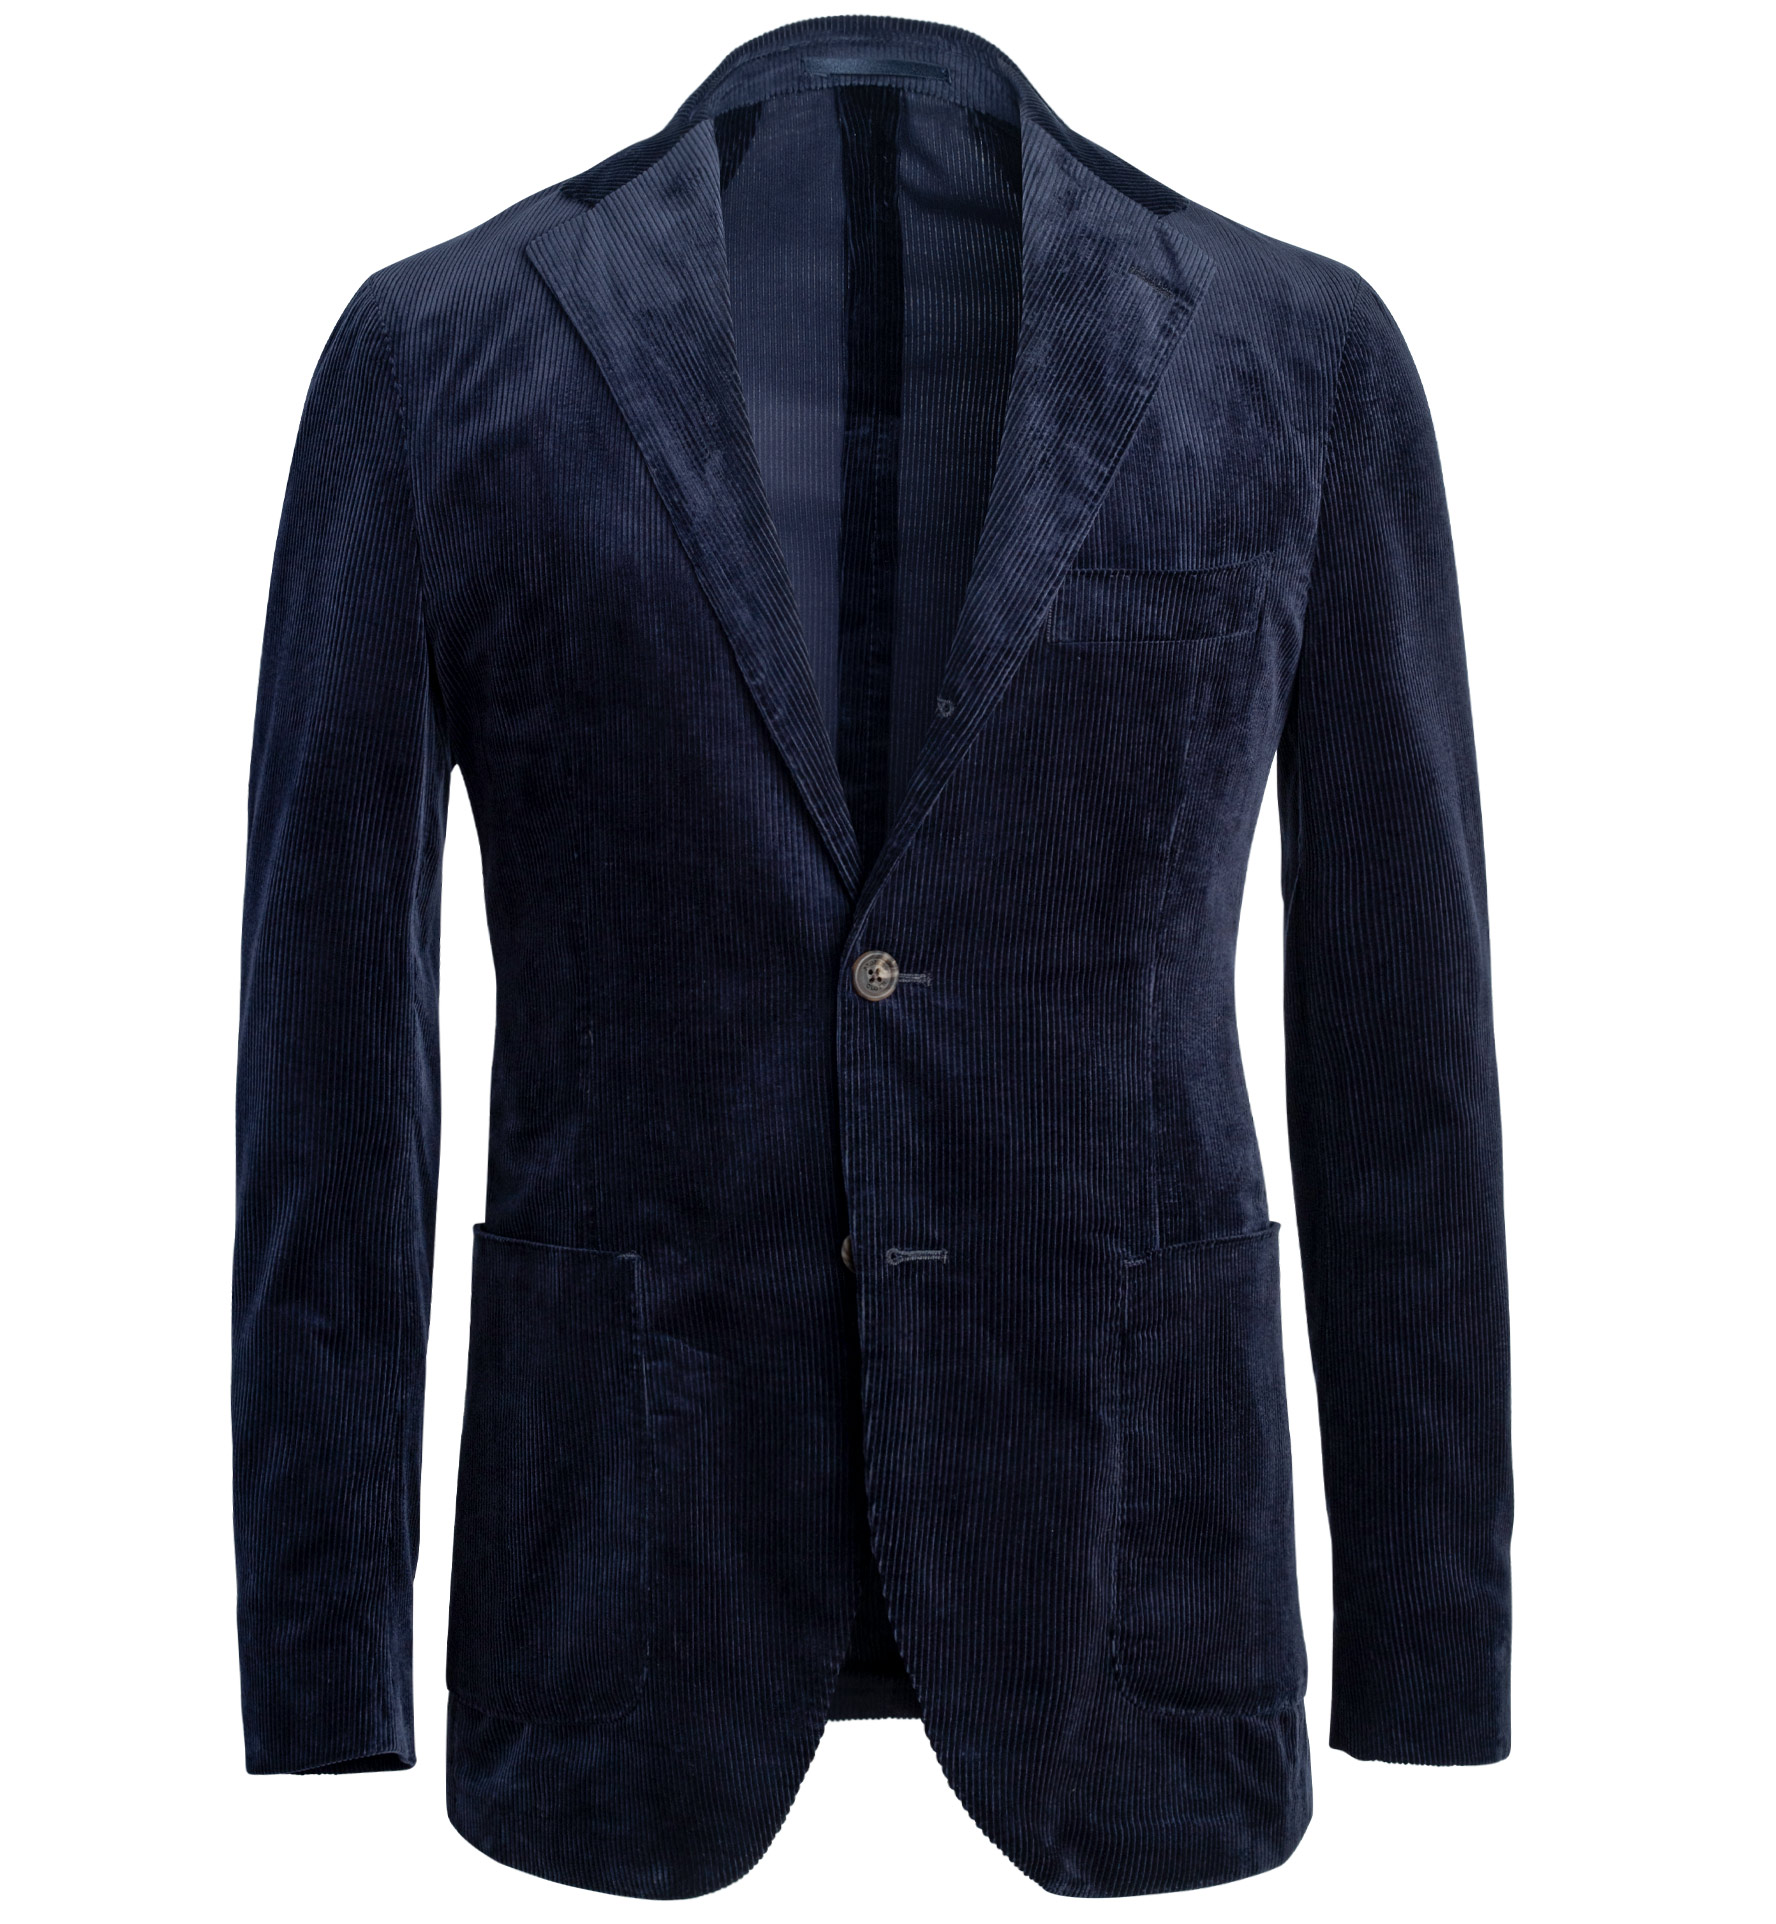 Zoom Image of Waverly Navy Lightweight Supima Corduroy Jacket